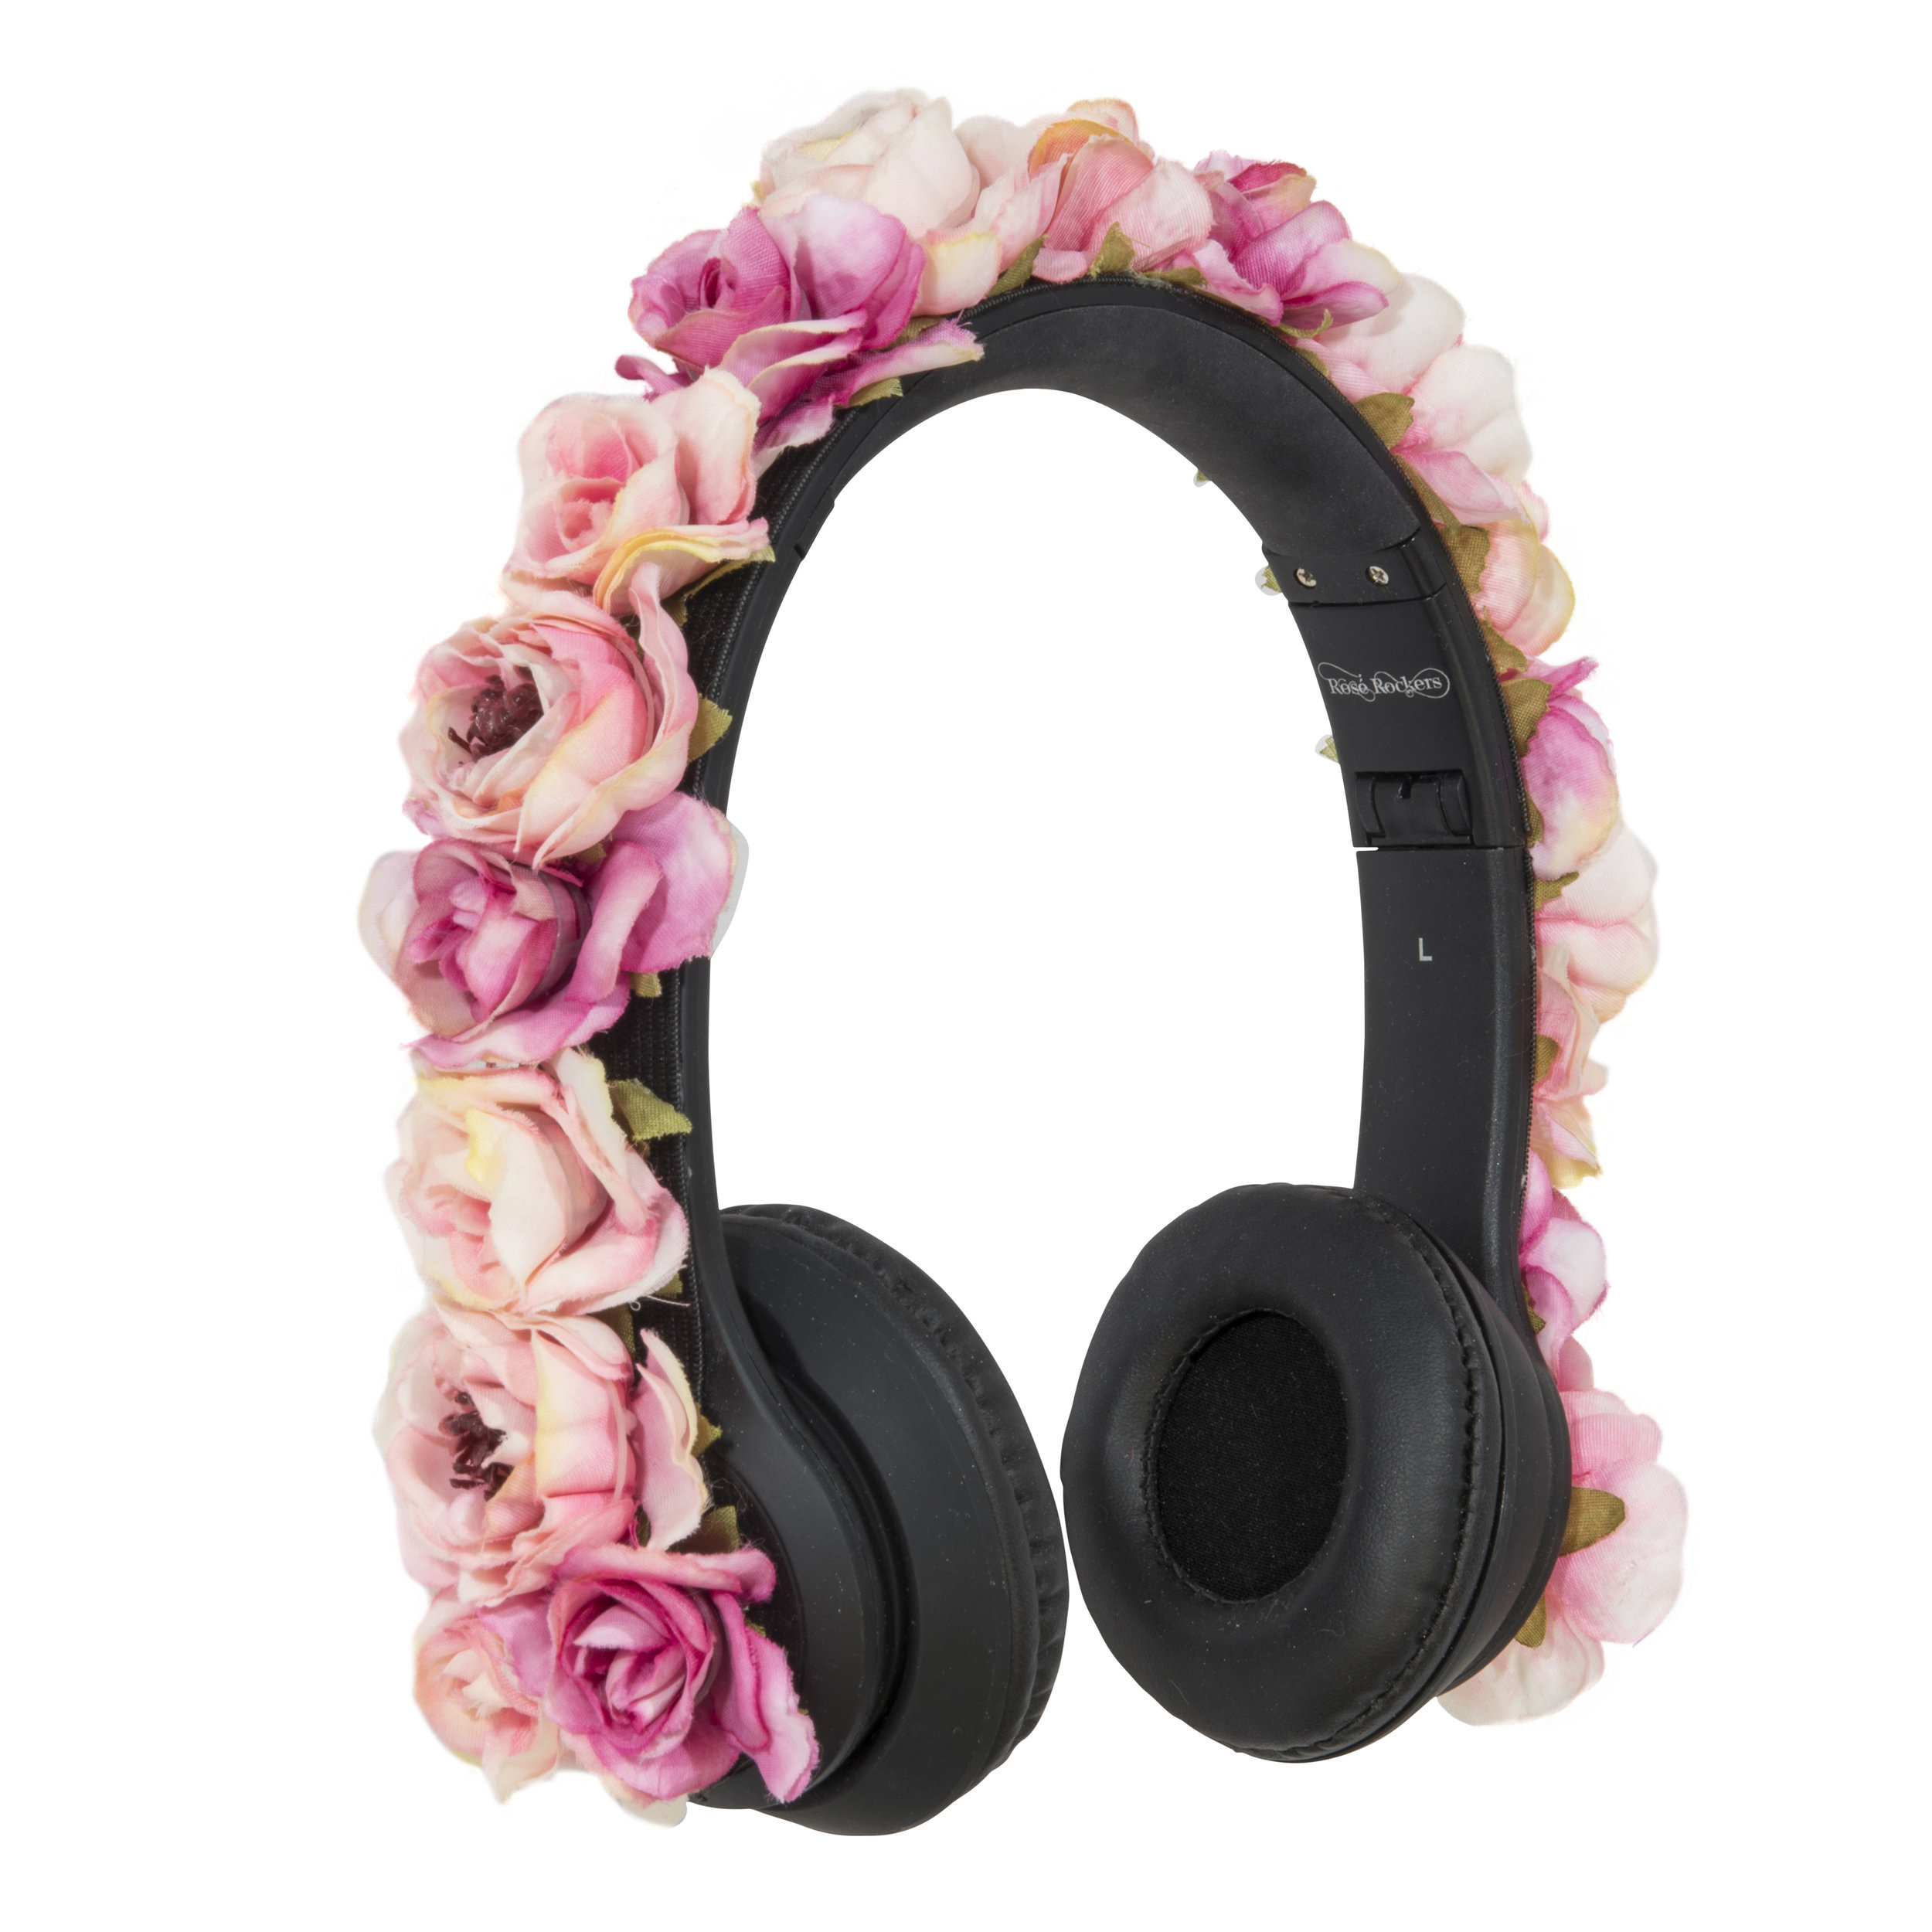 Rose Rockers Headphones .jpg